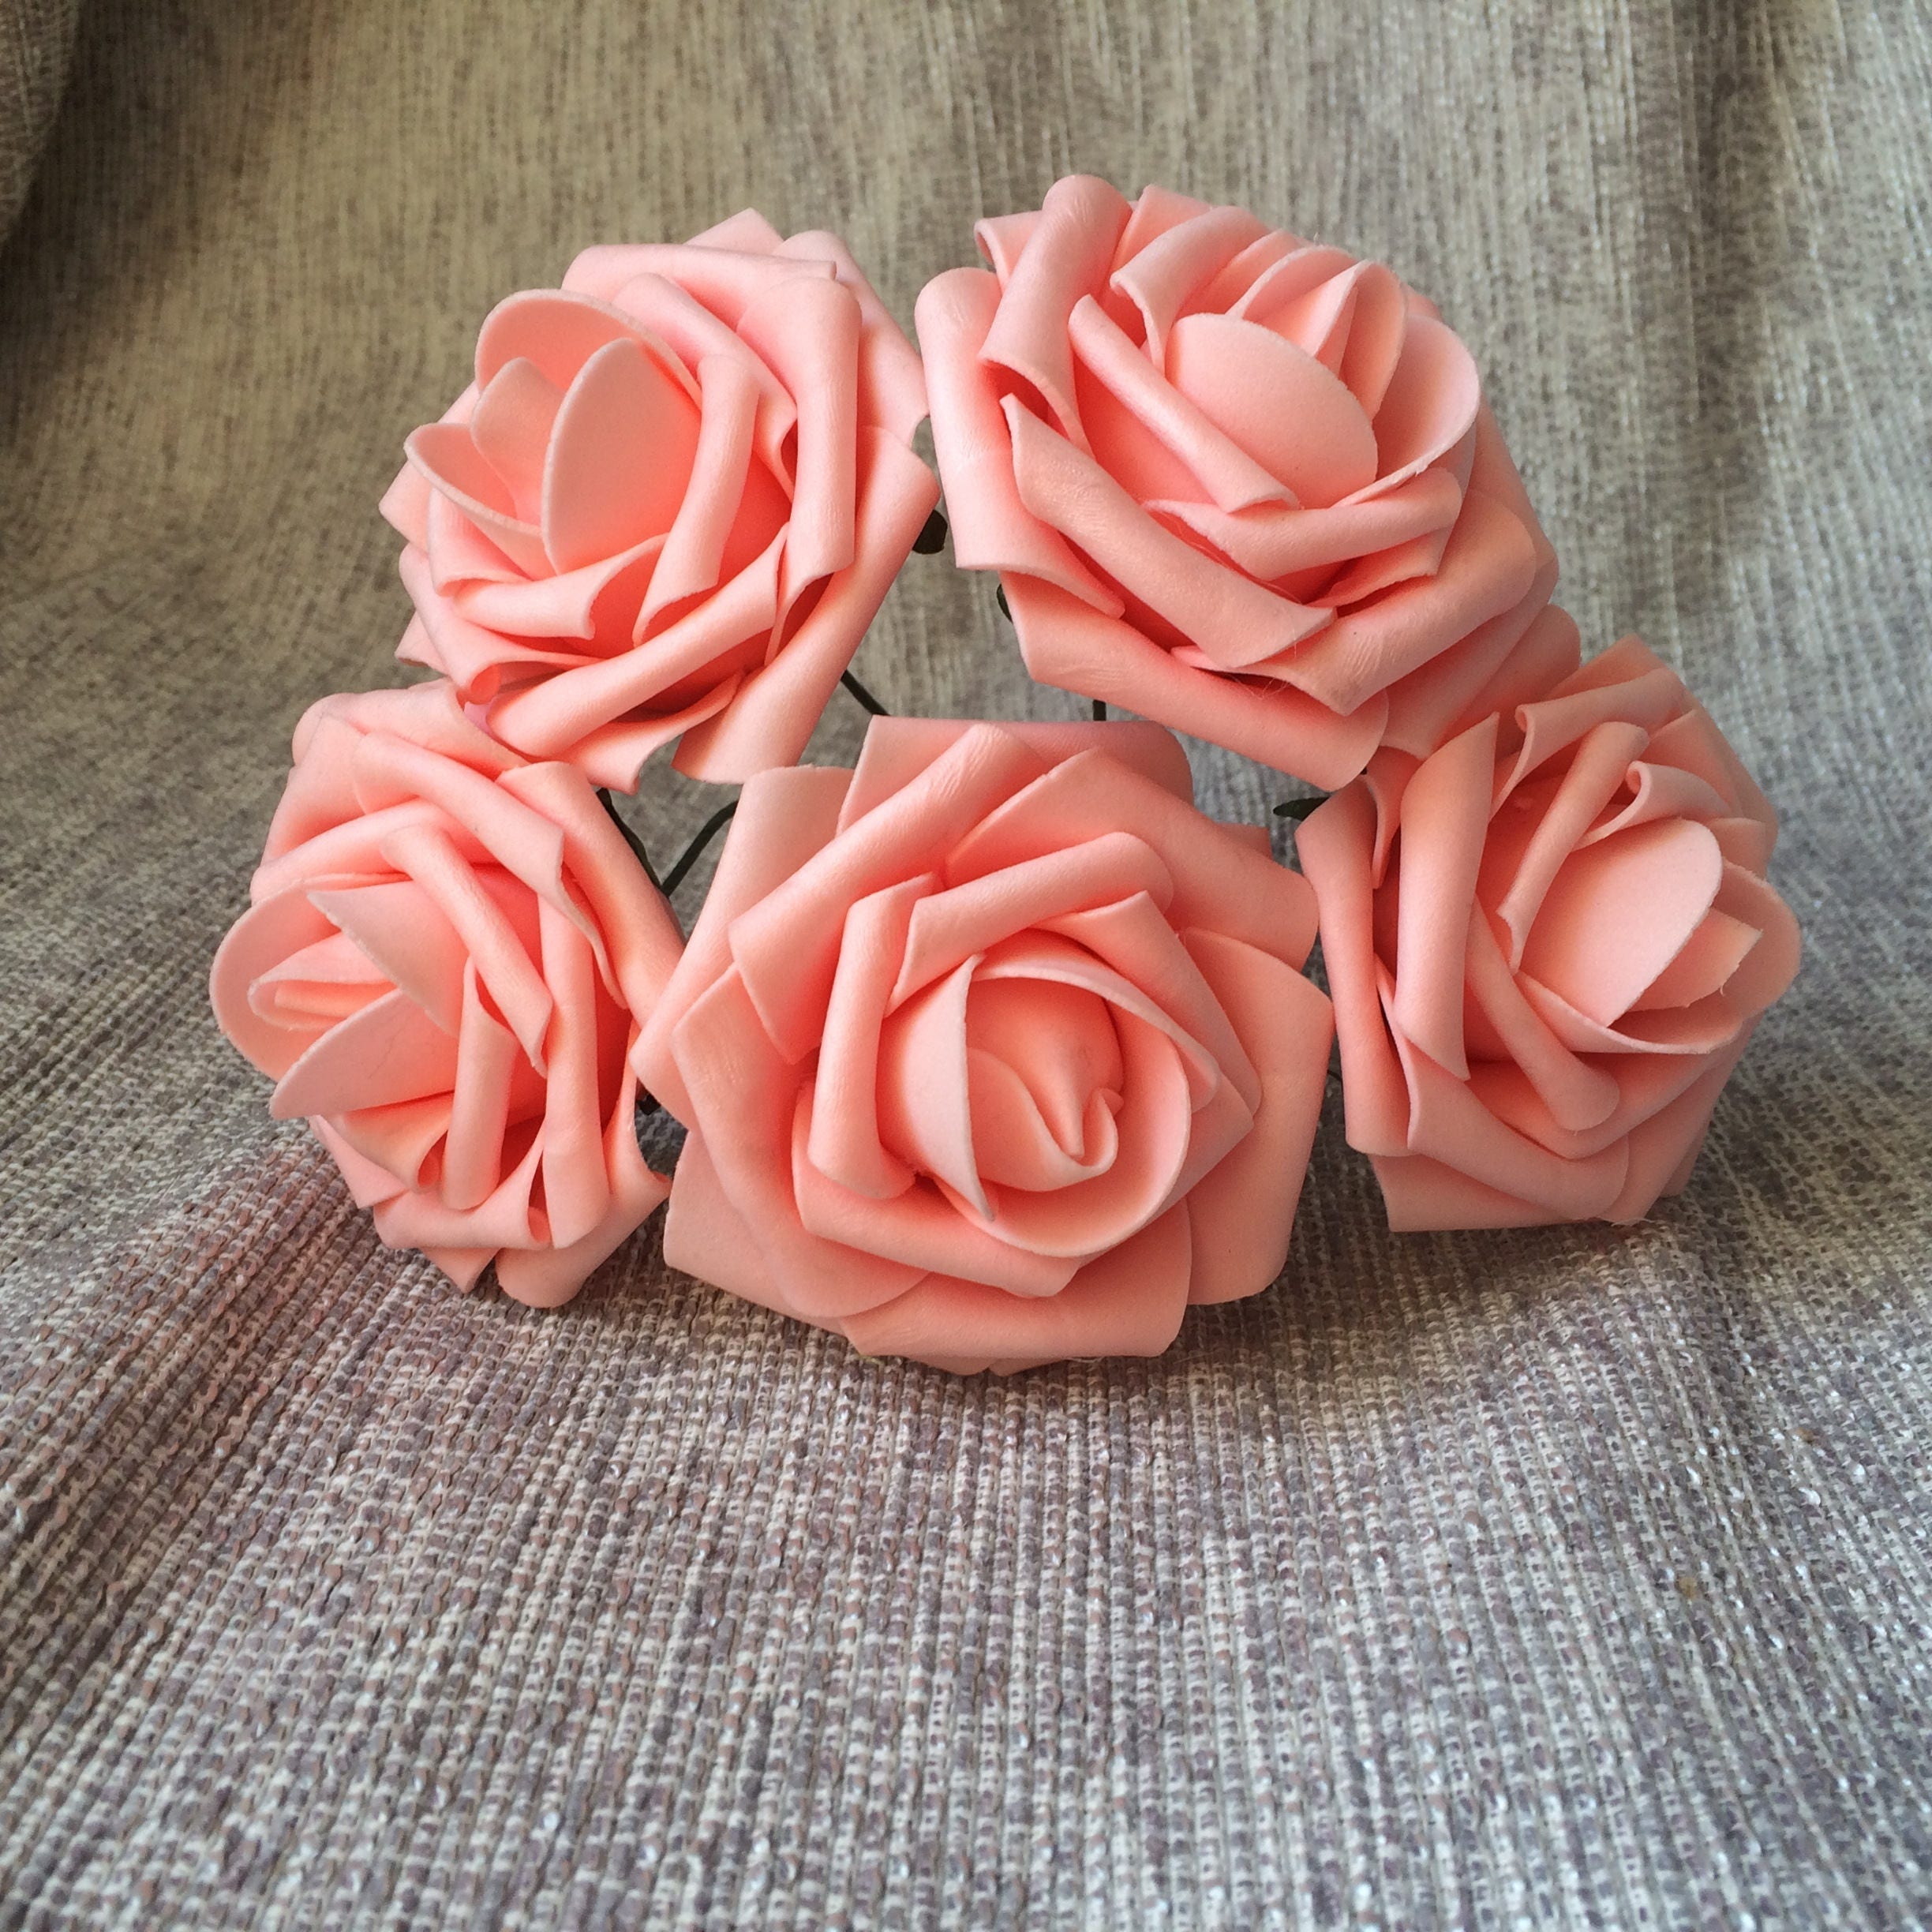 Peach Pink Wedding Flowers Fake Roses Bulk 100 Stems Peach Etsy